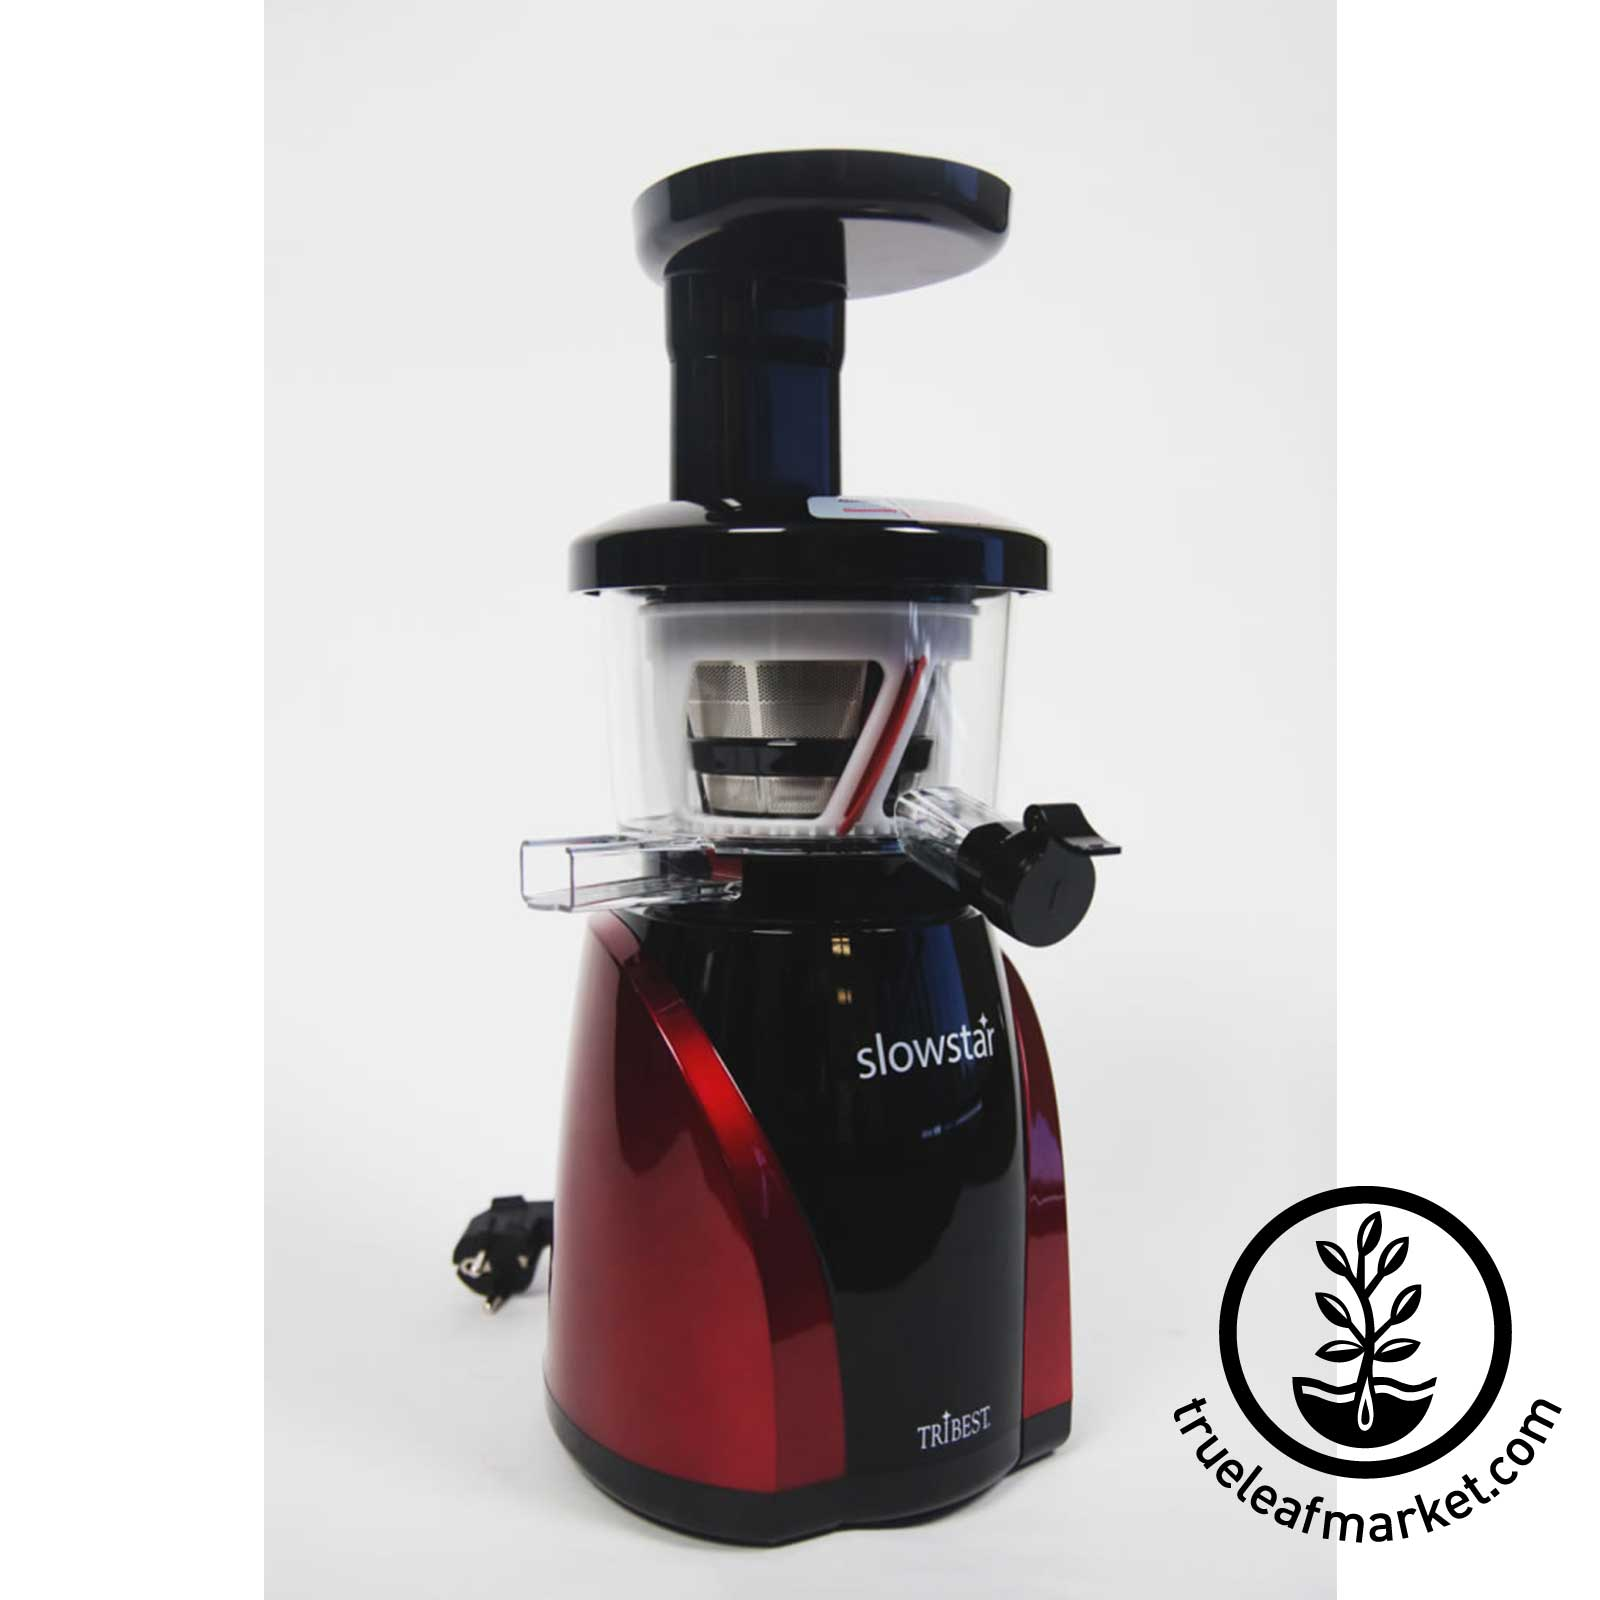 Slowstar Vertical Slow Juicer By Tribest : Tribest Masticating vertical Slow Juicer Model SW-2000